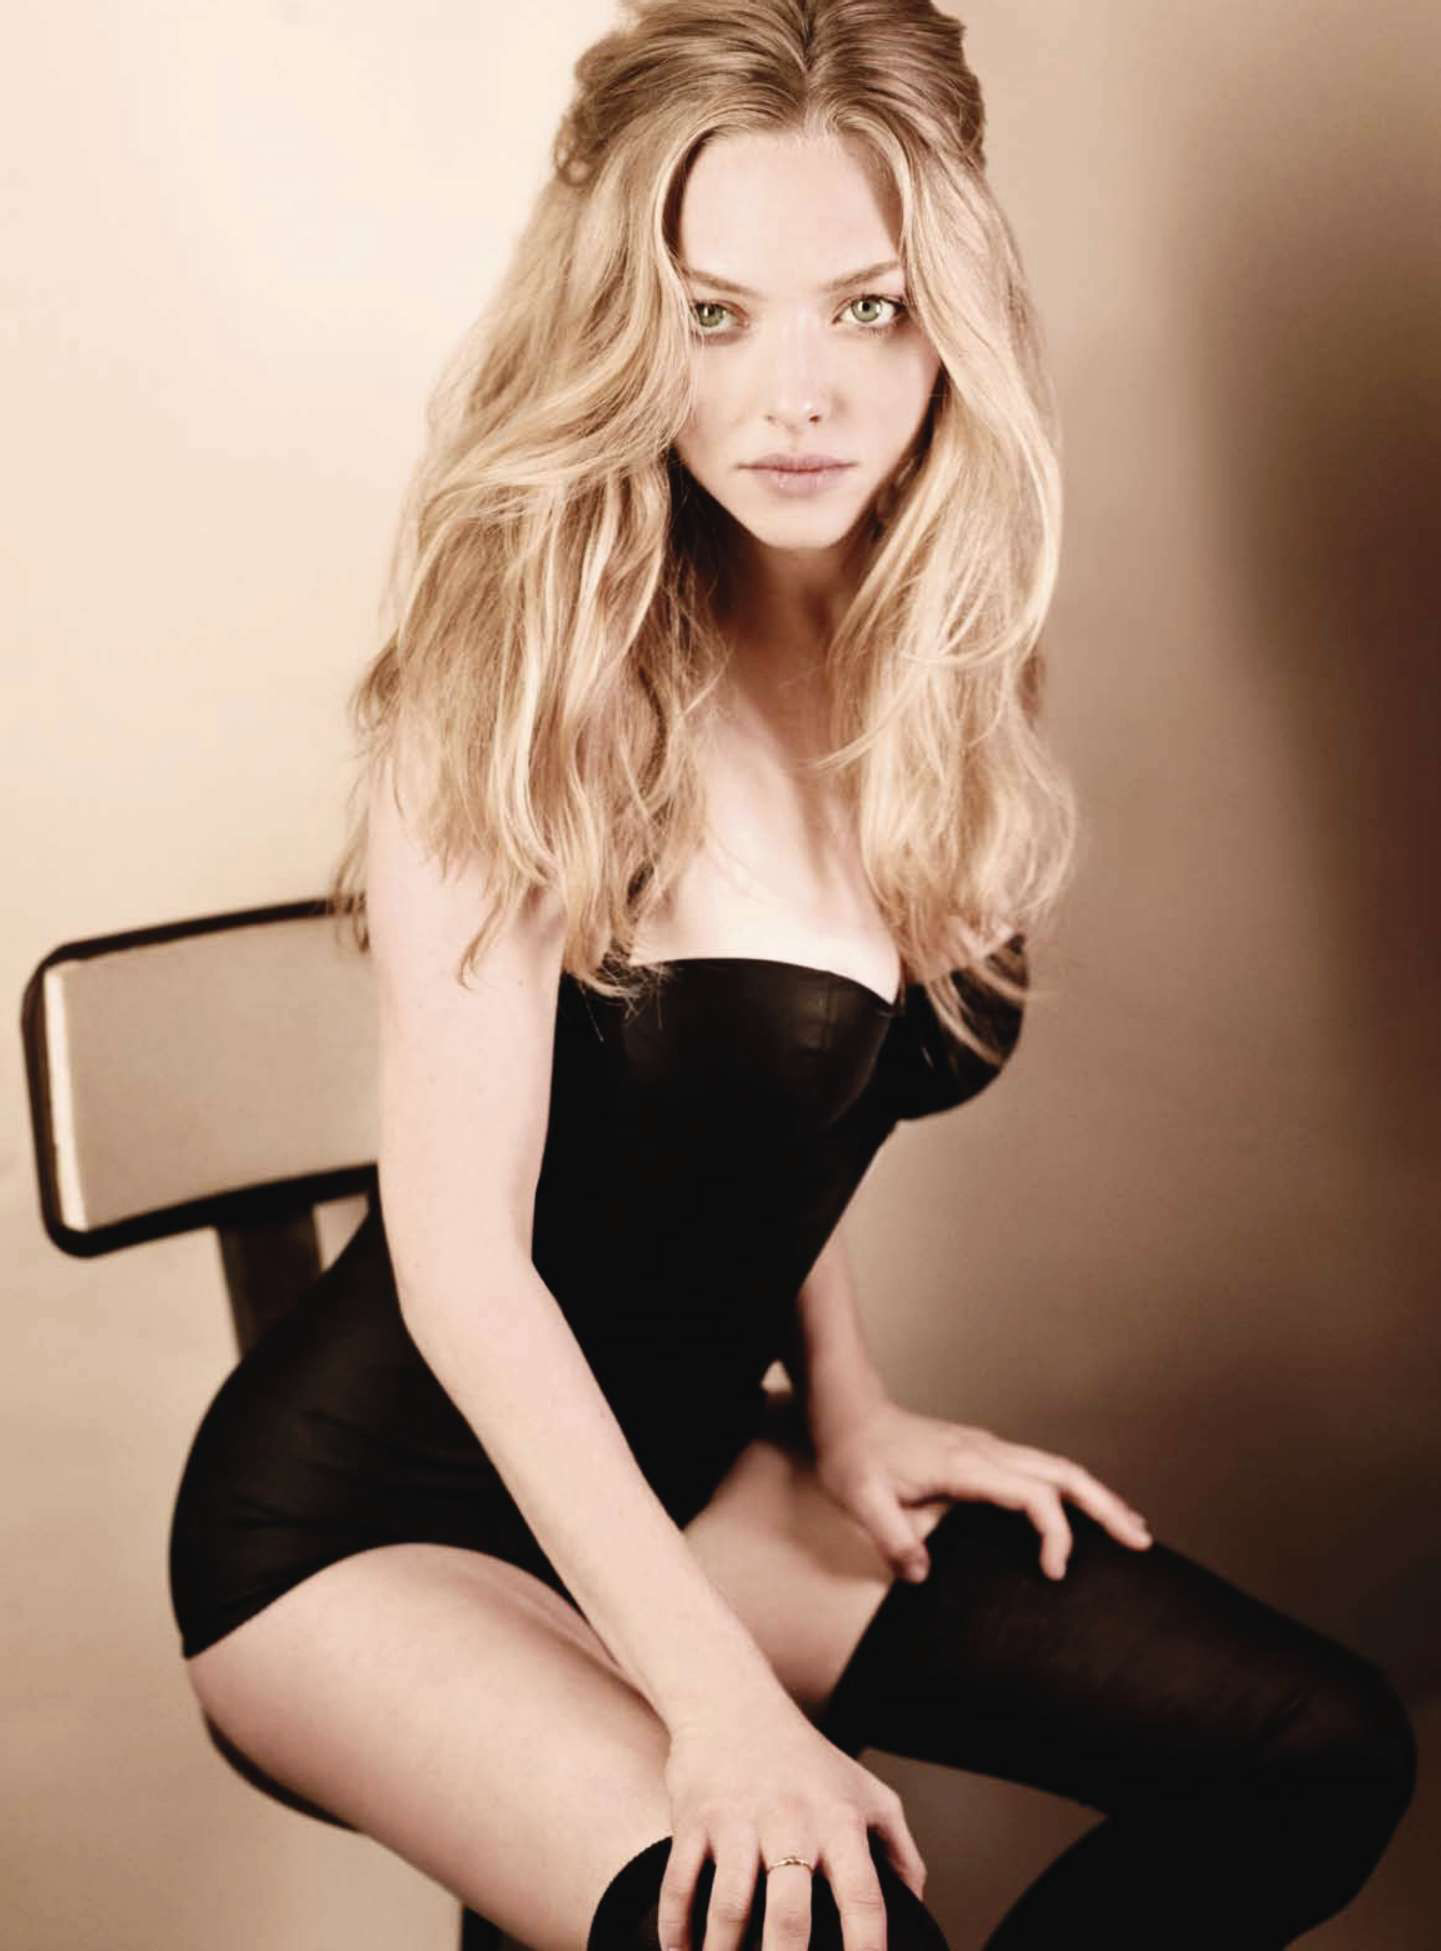 Amanda Seyfried Photo Gallery